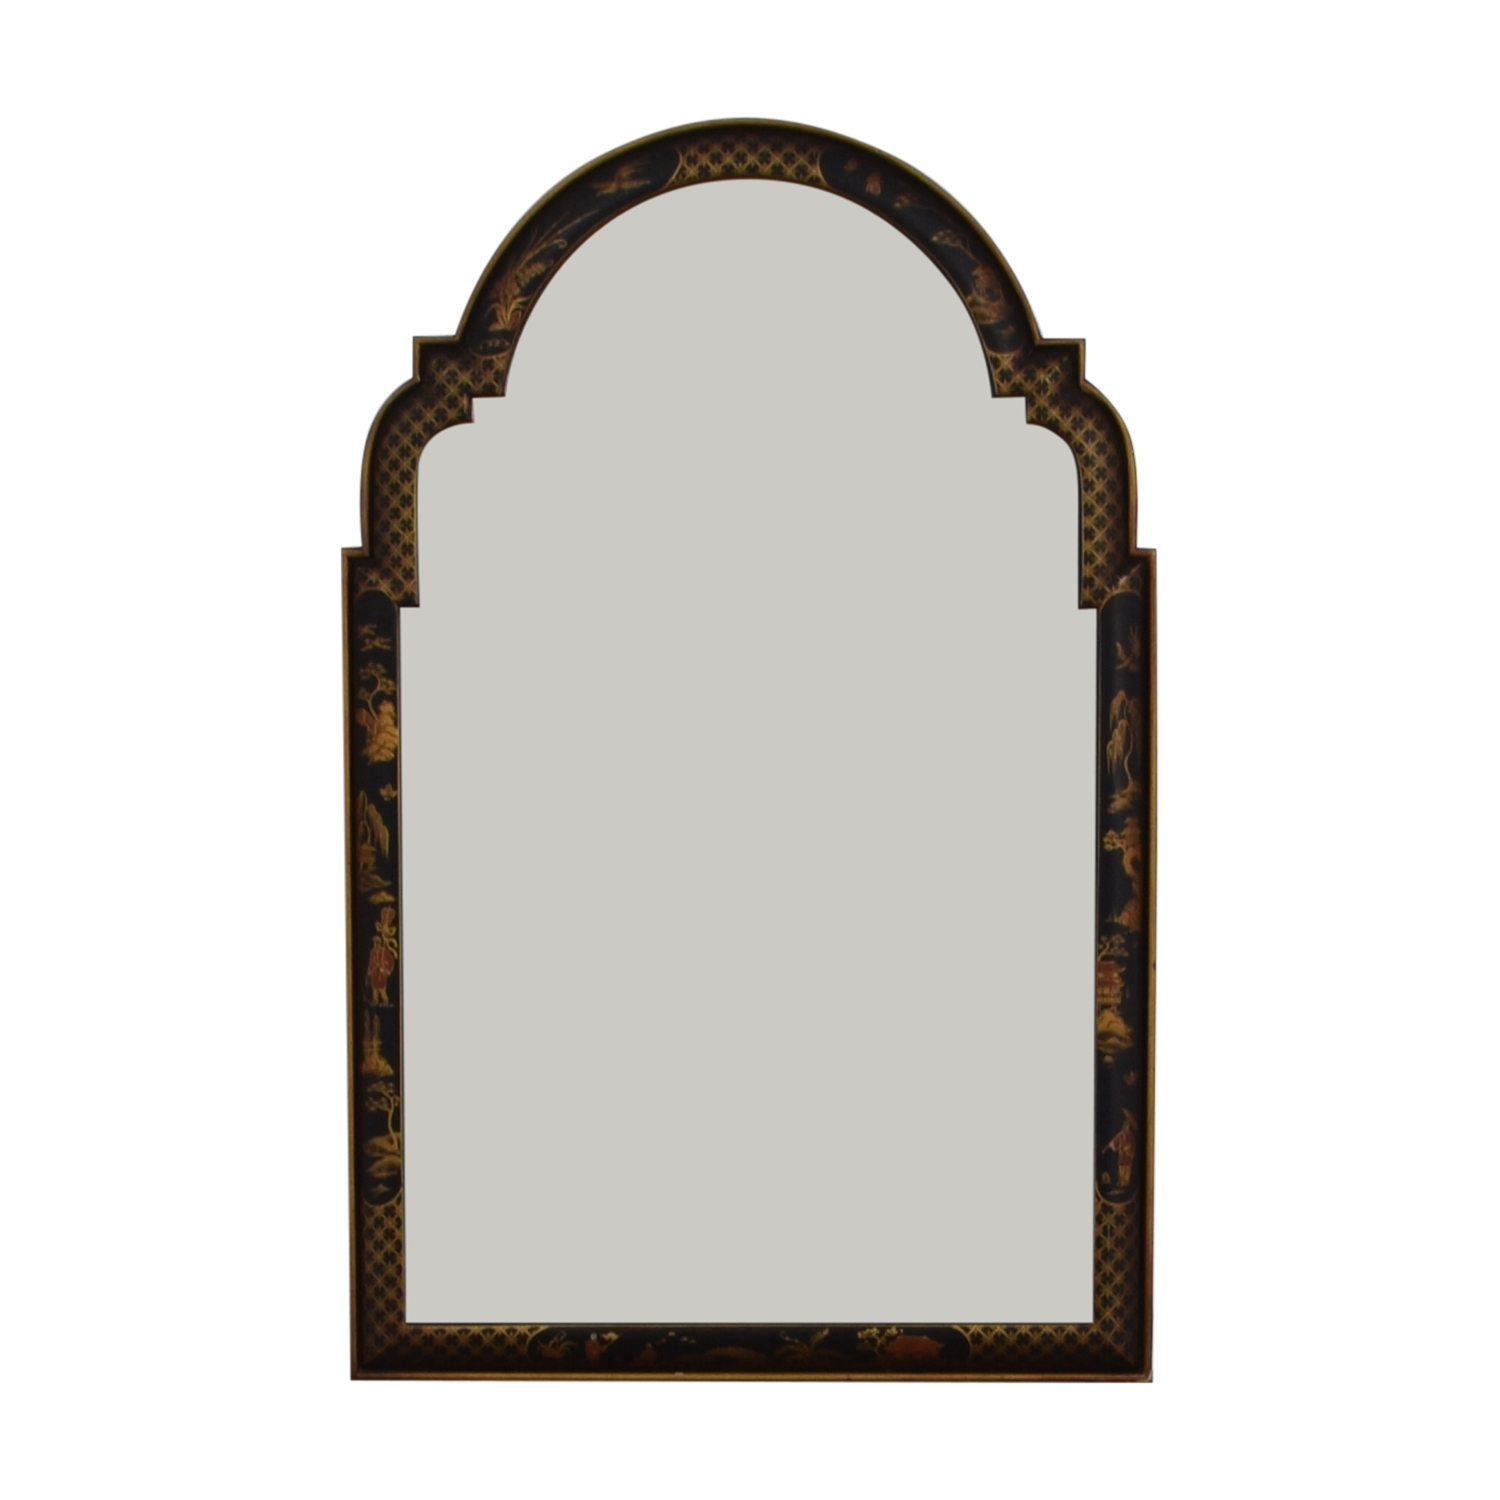 [%72% Off – Black Lacquer Frame With Japanese Drawings Wall Mirror / Decor Within Popular Black Frame Wall Mirrors|black Frame Wall Mirrors With Best And Newest 72% Off – Black Lacquer Frame With Japanese Drawings Wall Mirror / Decor|well Known Black Frame Wall Mirrors Inside 72% Off – Black Lacquer Frame With Japanese Drawings Wall Mirror / Decor|recent 72% Off – Black Lacquer Frame With Japanese Drawings Wall Mirror / Decor Throughout Black Frame Wall Mirrors%] (View 13 of 20)